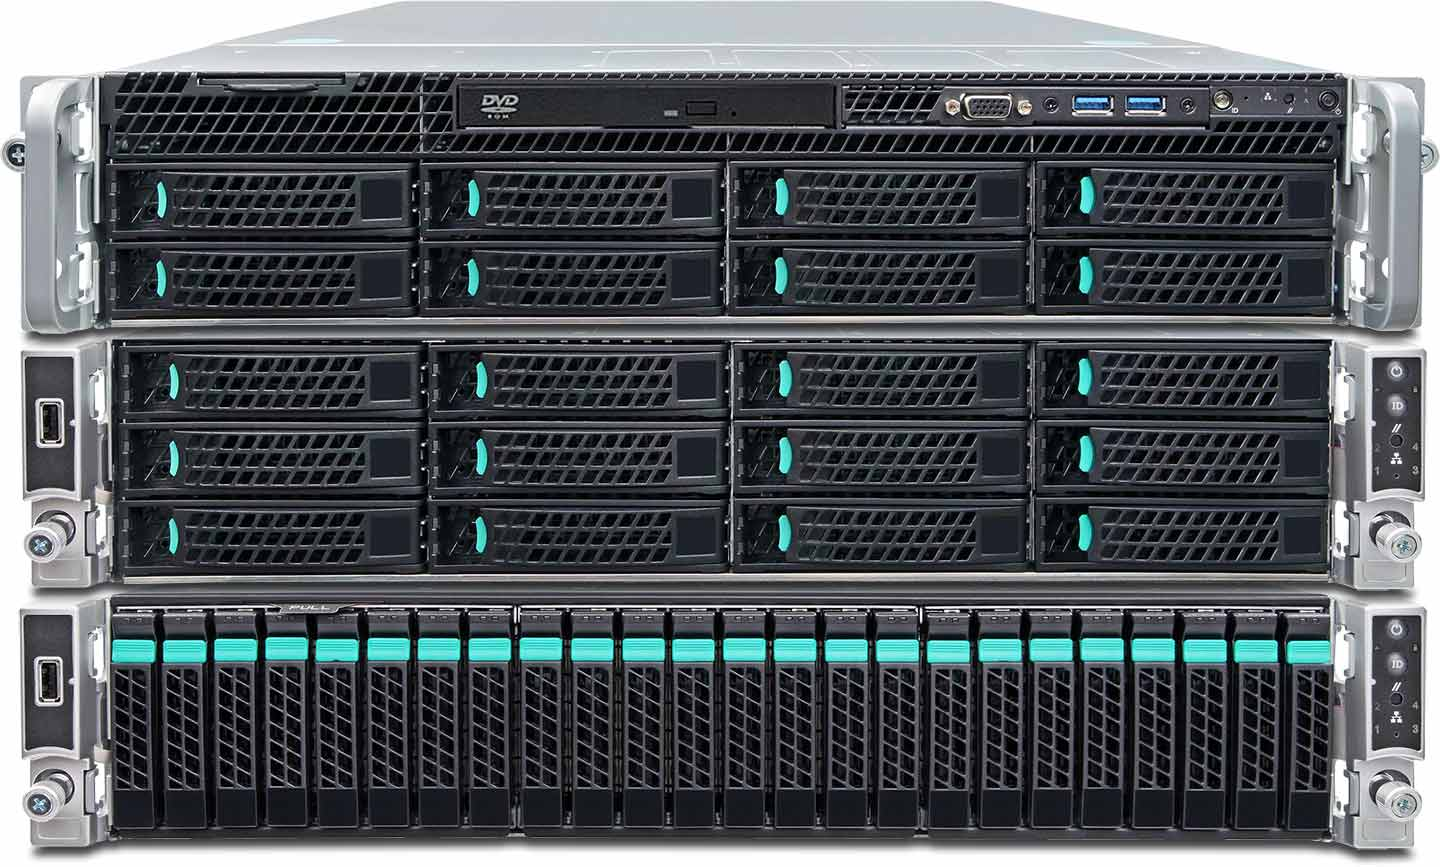 UNICOM Engineering Server Platform - E-2900 R4